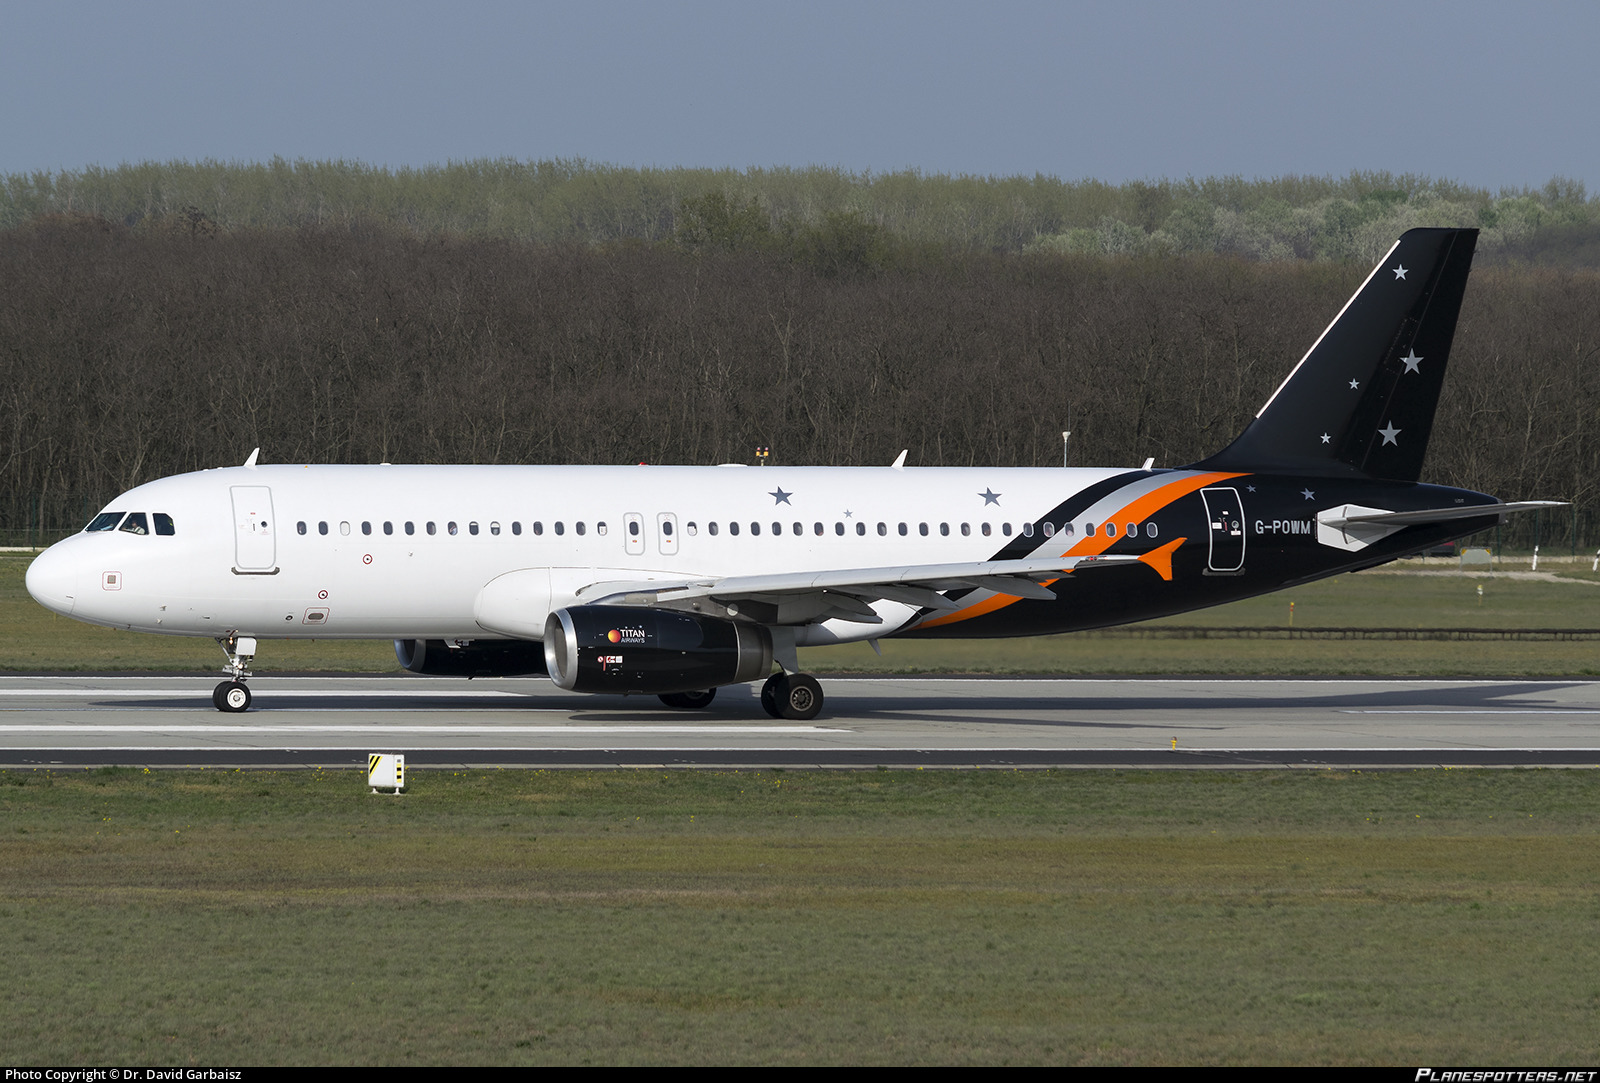 G Powm Titan Airways Airbus A320 232 Photo By Dr David Garbaisz Id 693697 Planespotters Net Looking for online definition of powm or what powm stands for? g powm titan airways airbus a320 232